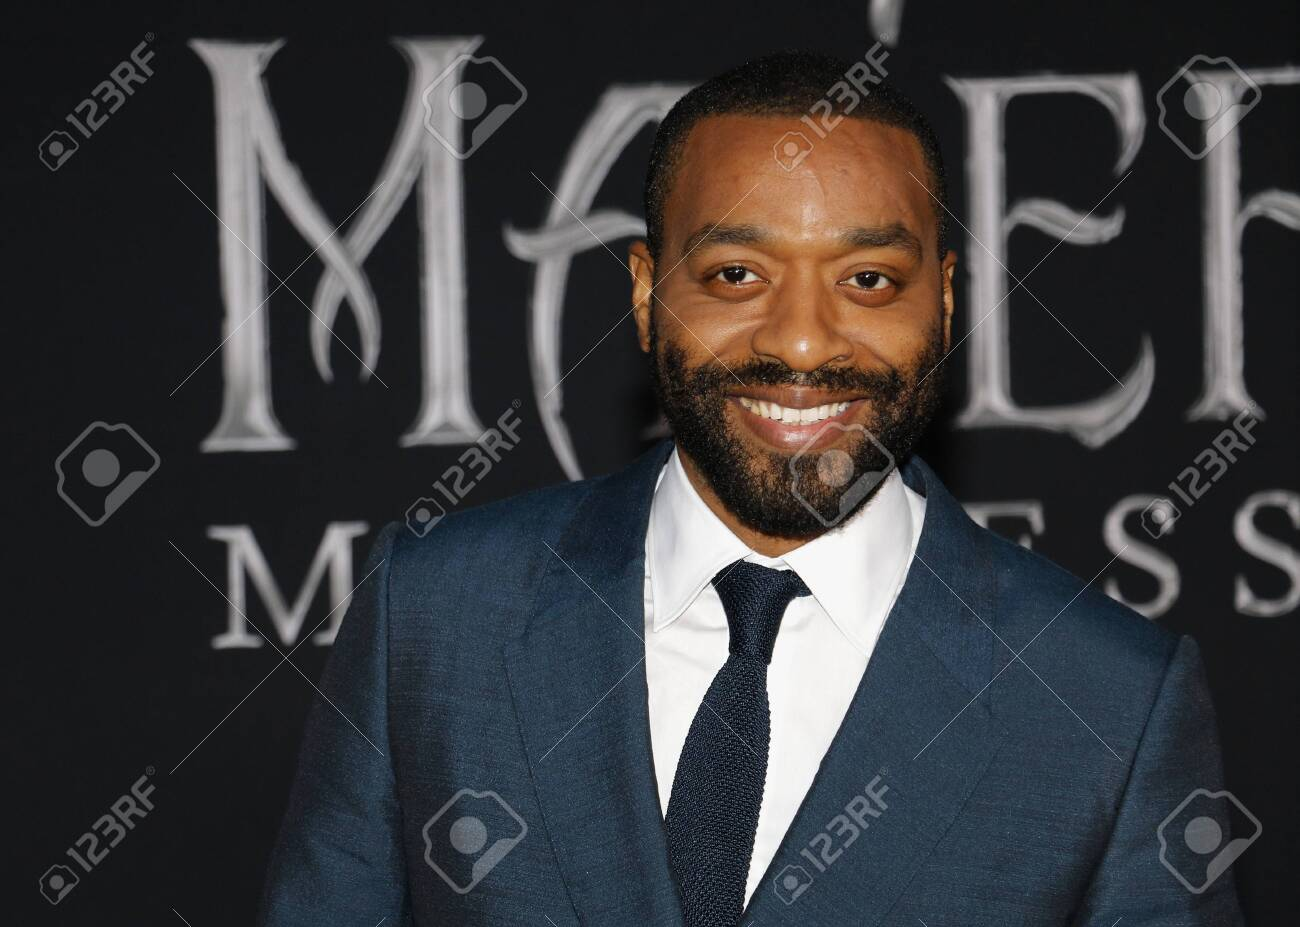 Chiwetel Ejiofor At The World Premiere Of Disney S Maleficent